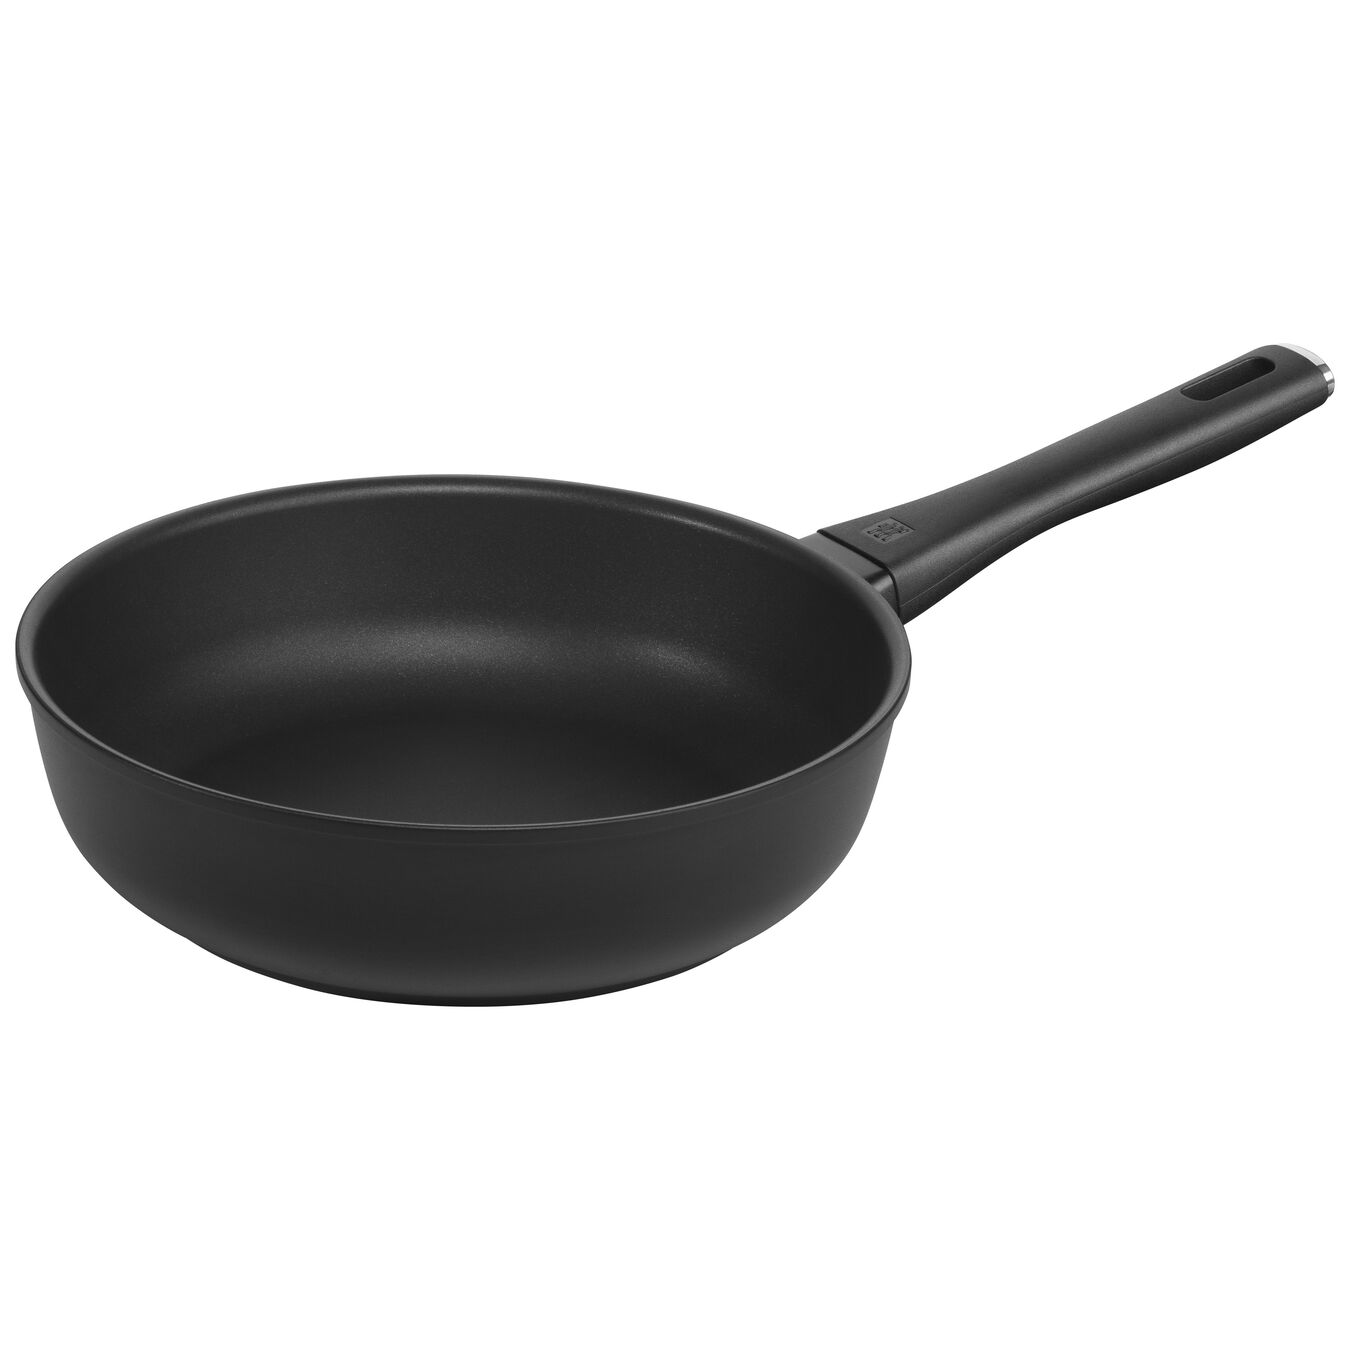 9.5-inch, Non-stick, Frying pan high-sided,,large 1